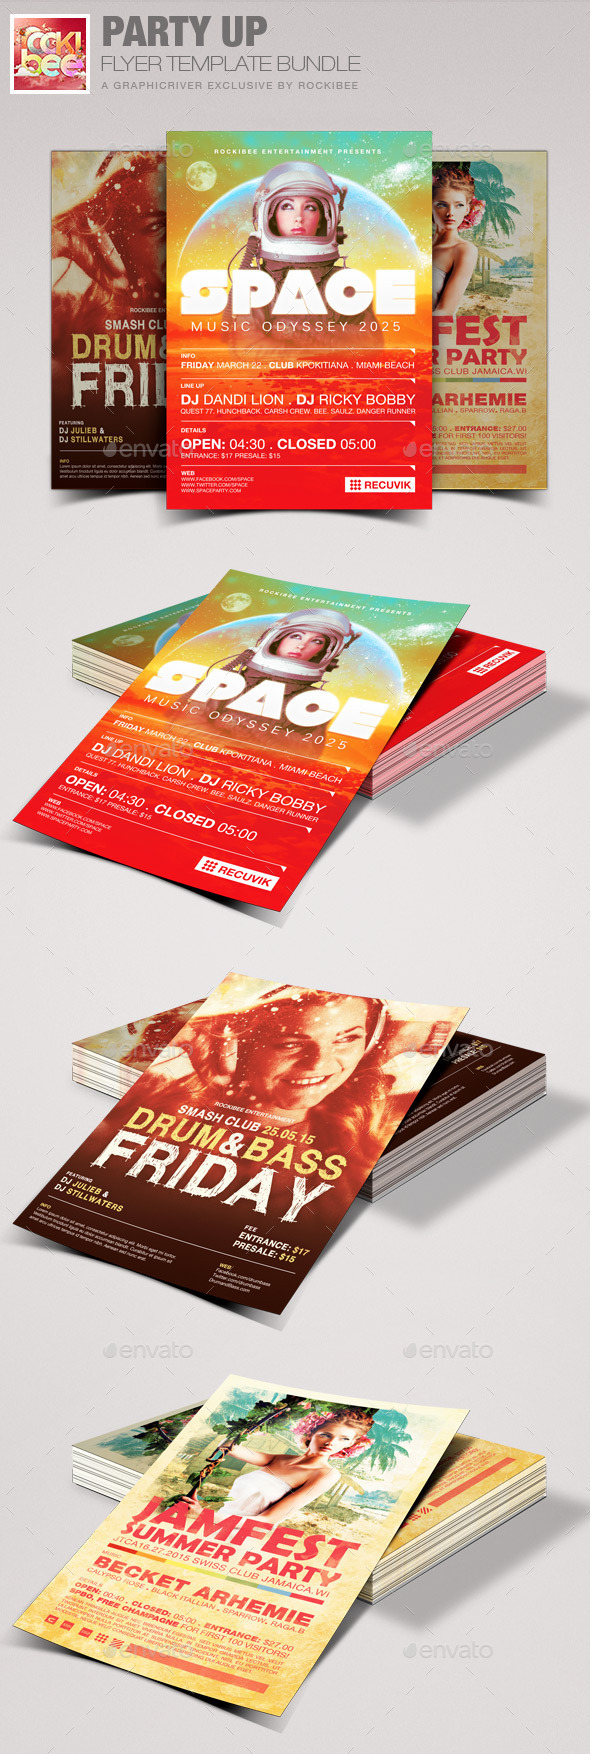 Party Up Flyer Template Bundle - Events Flyers